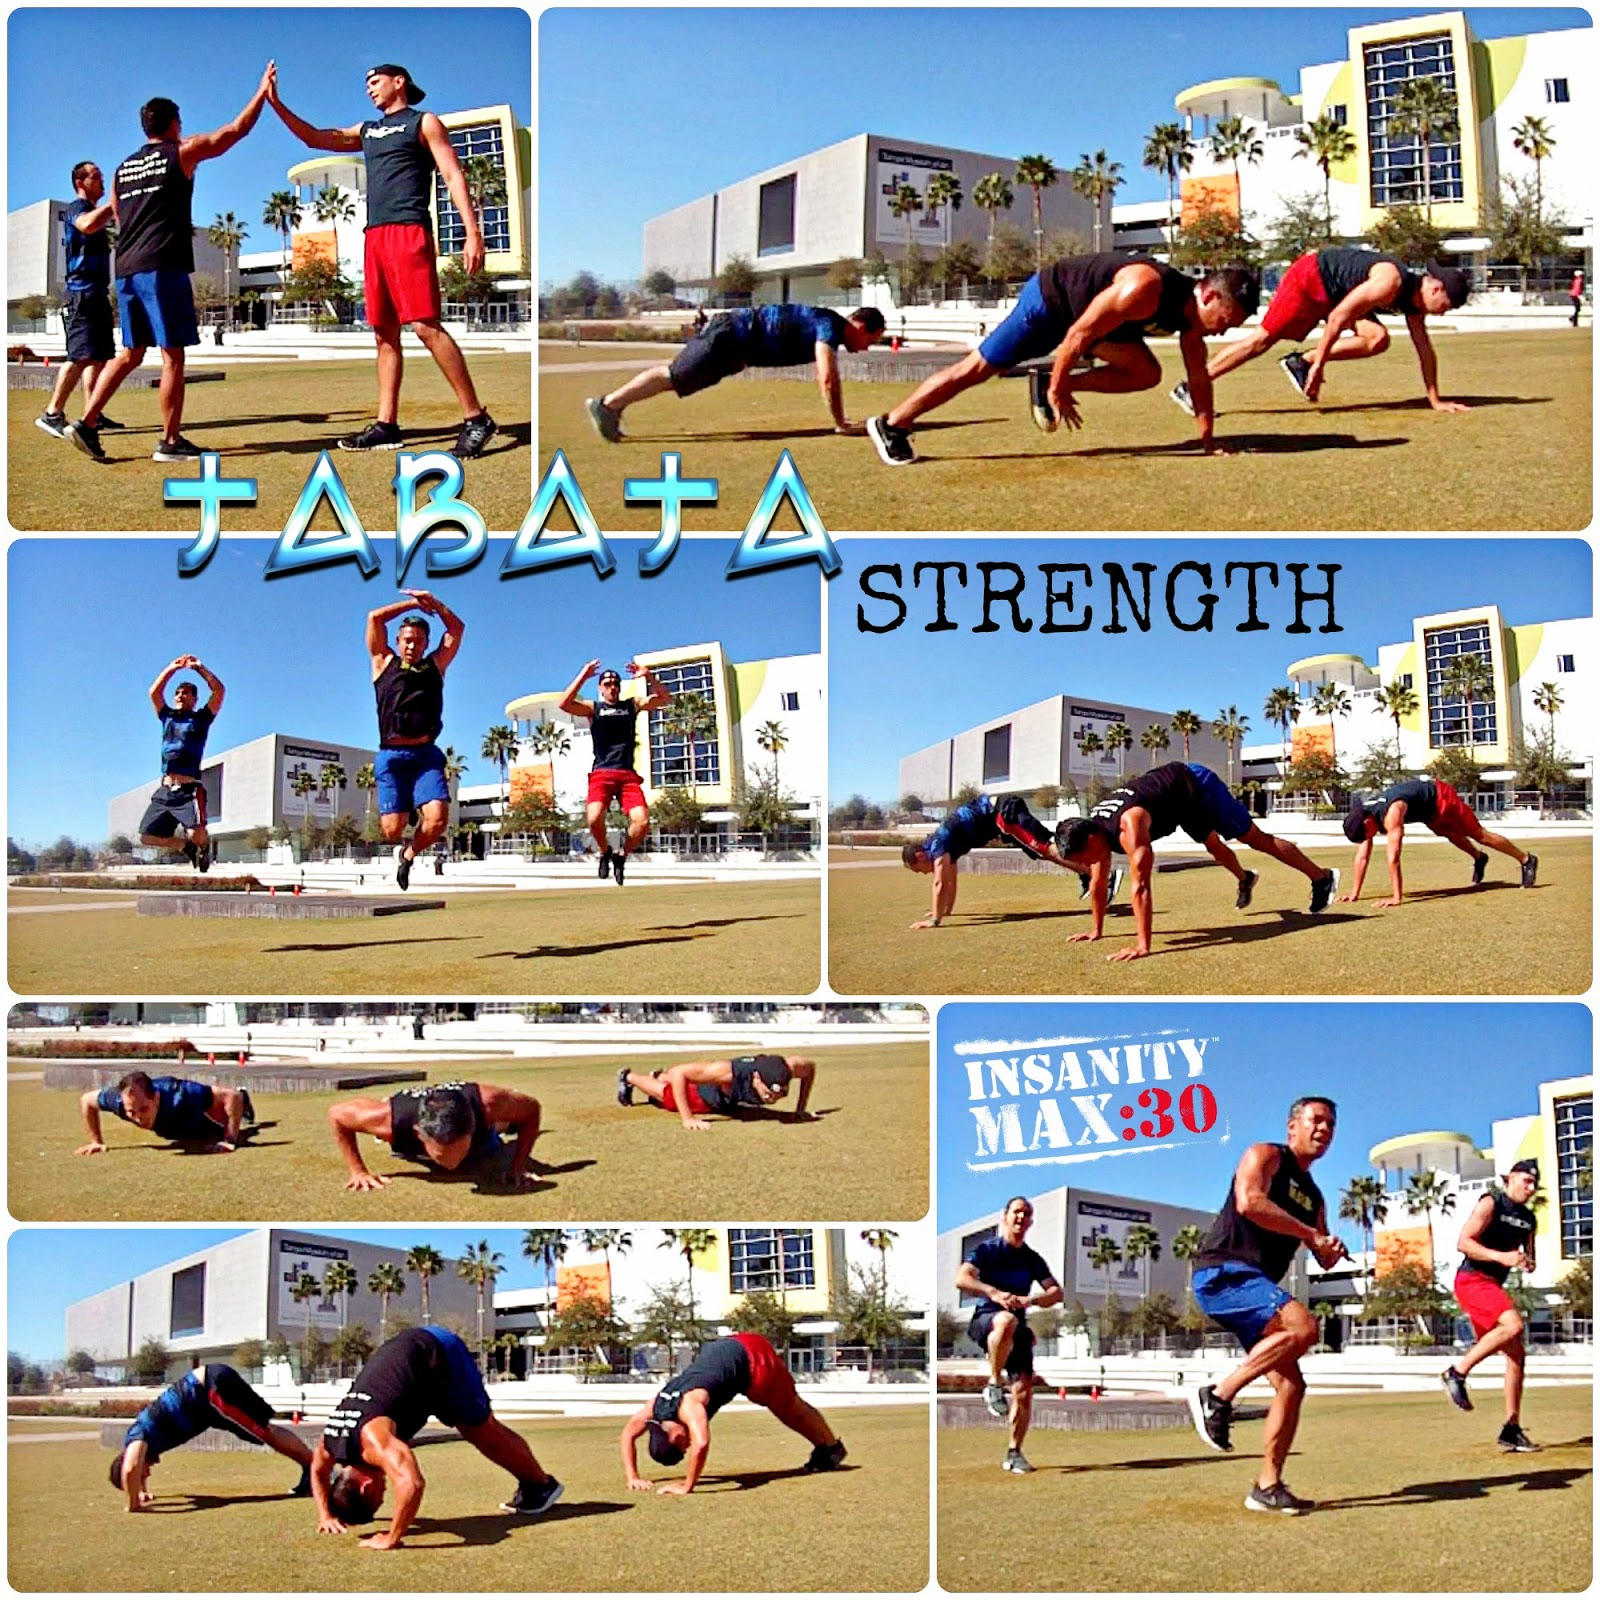 Insanity Max 30 Tabata Strength - Tabata Workout - Tabata Training - Curtis Hixon Park